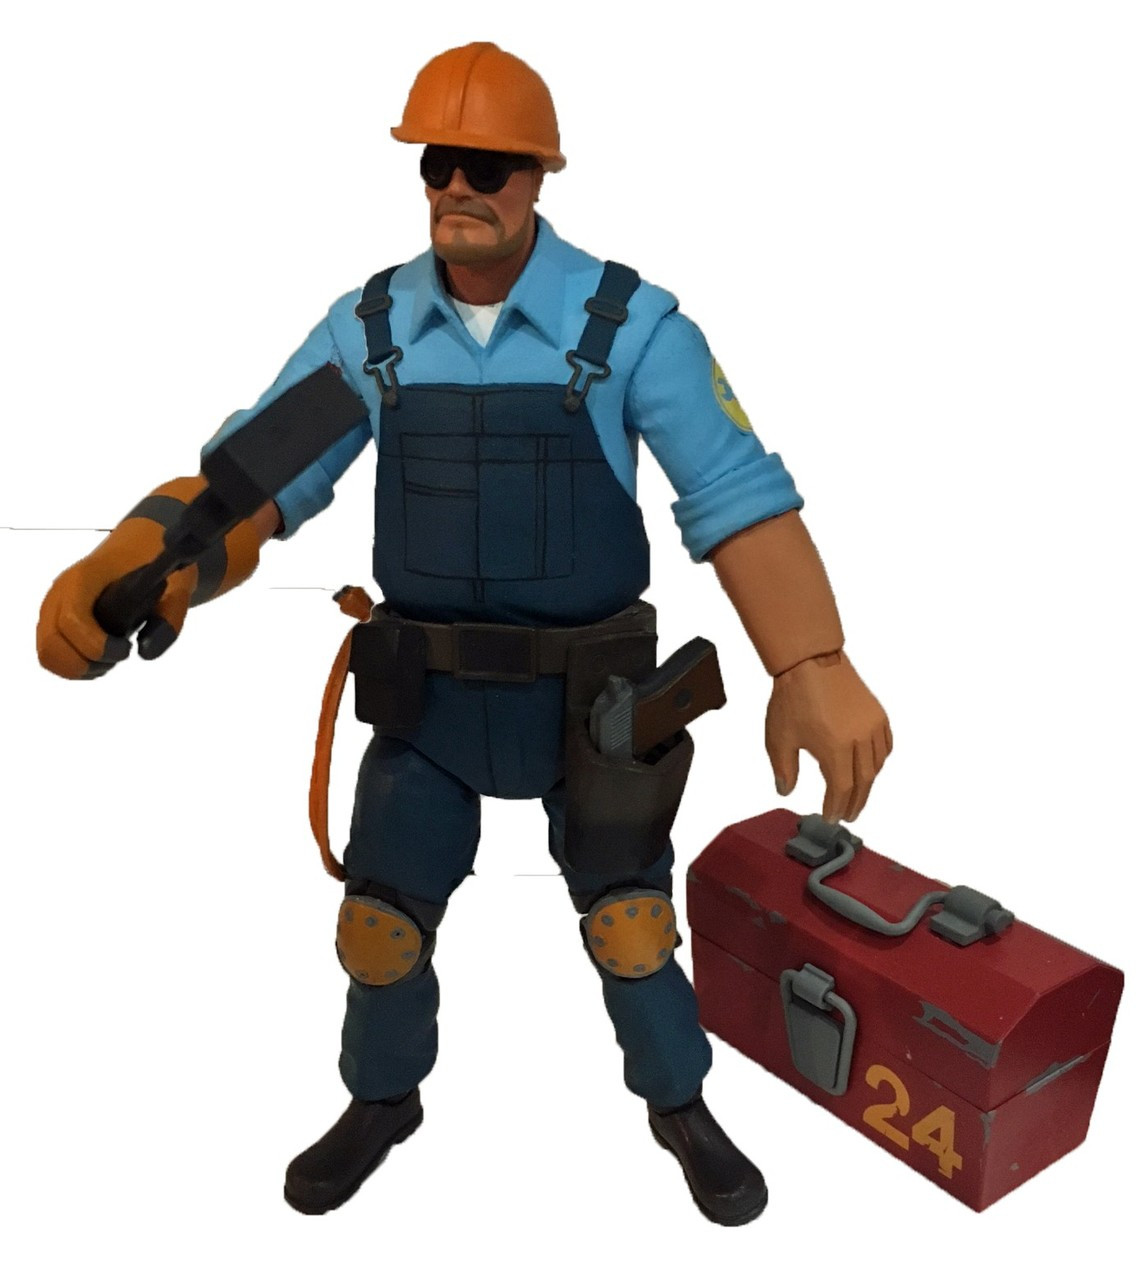 NECA Team Fortress 2 BLU Series 3 5 The Engineer 7 Action